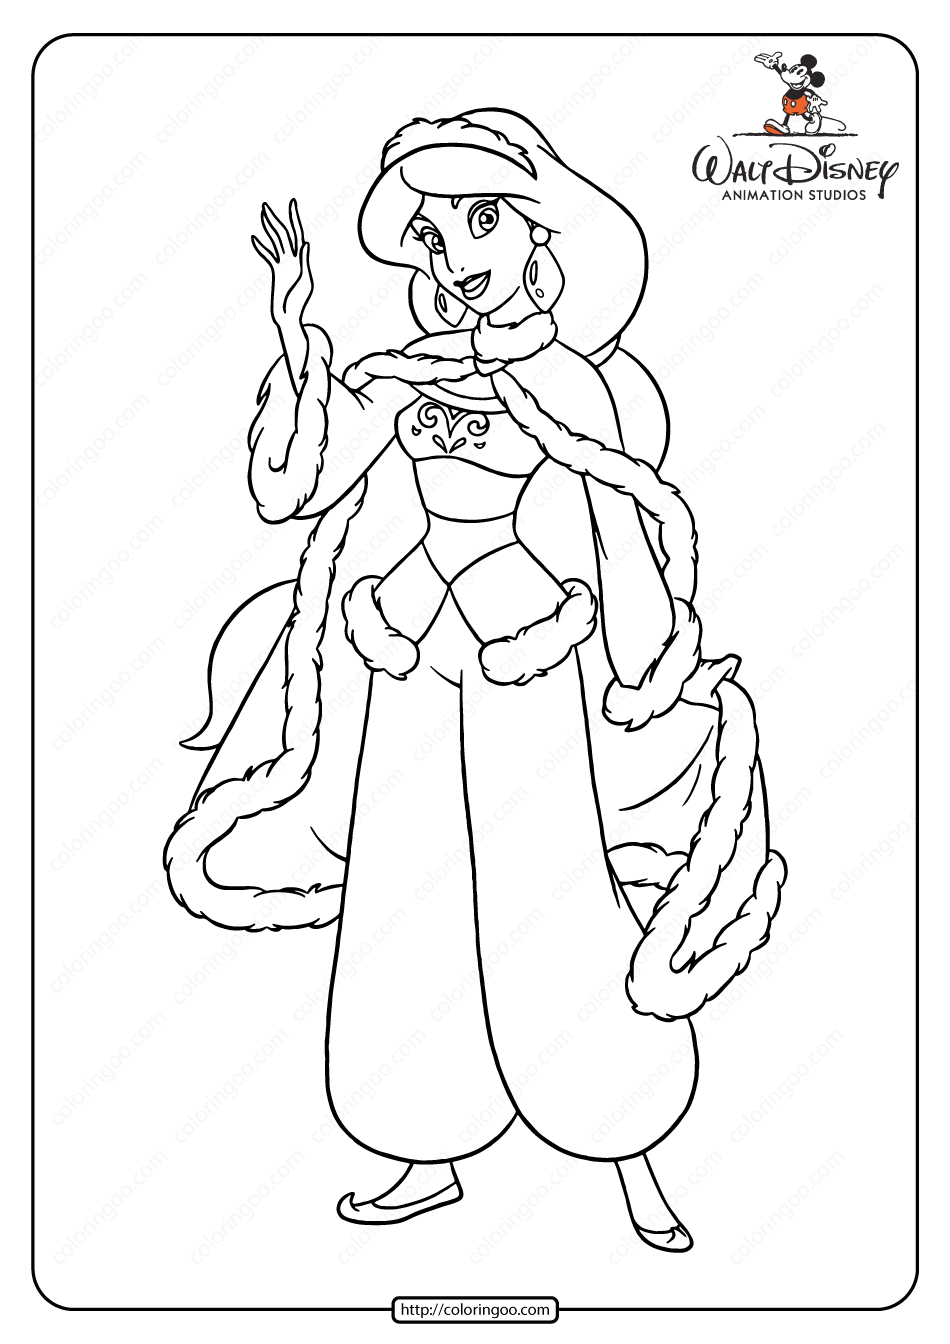 Princess Jasmine Ready For Winter Coloring Page Coloring Pages Princess Jasmine Color